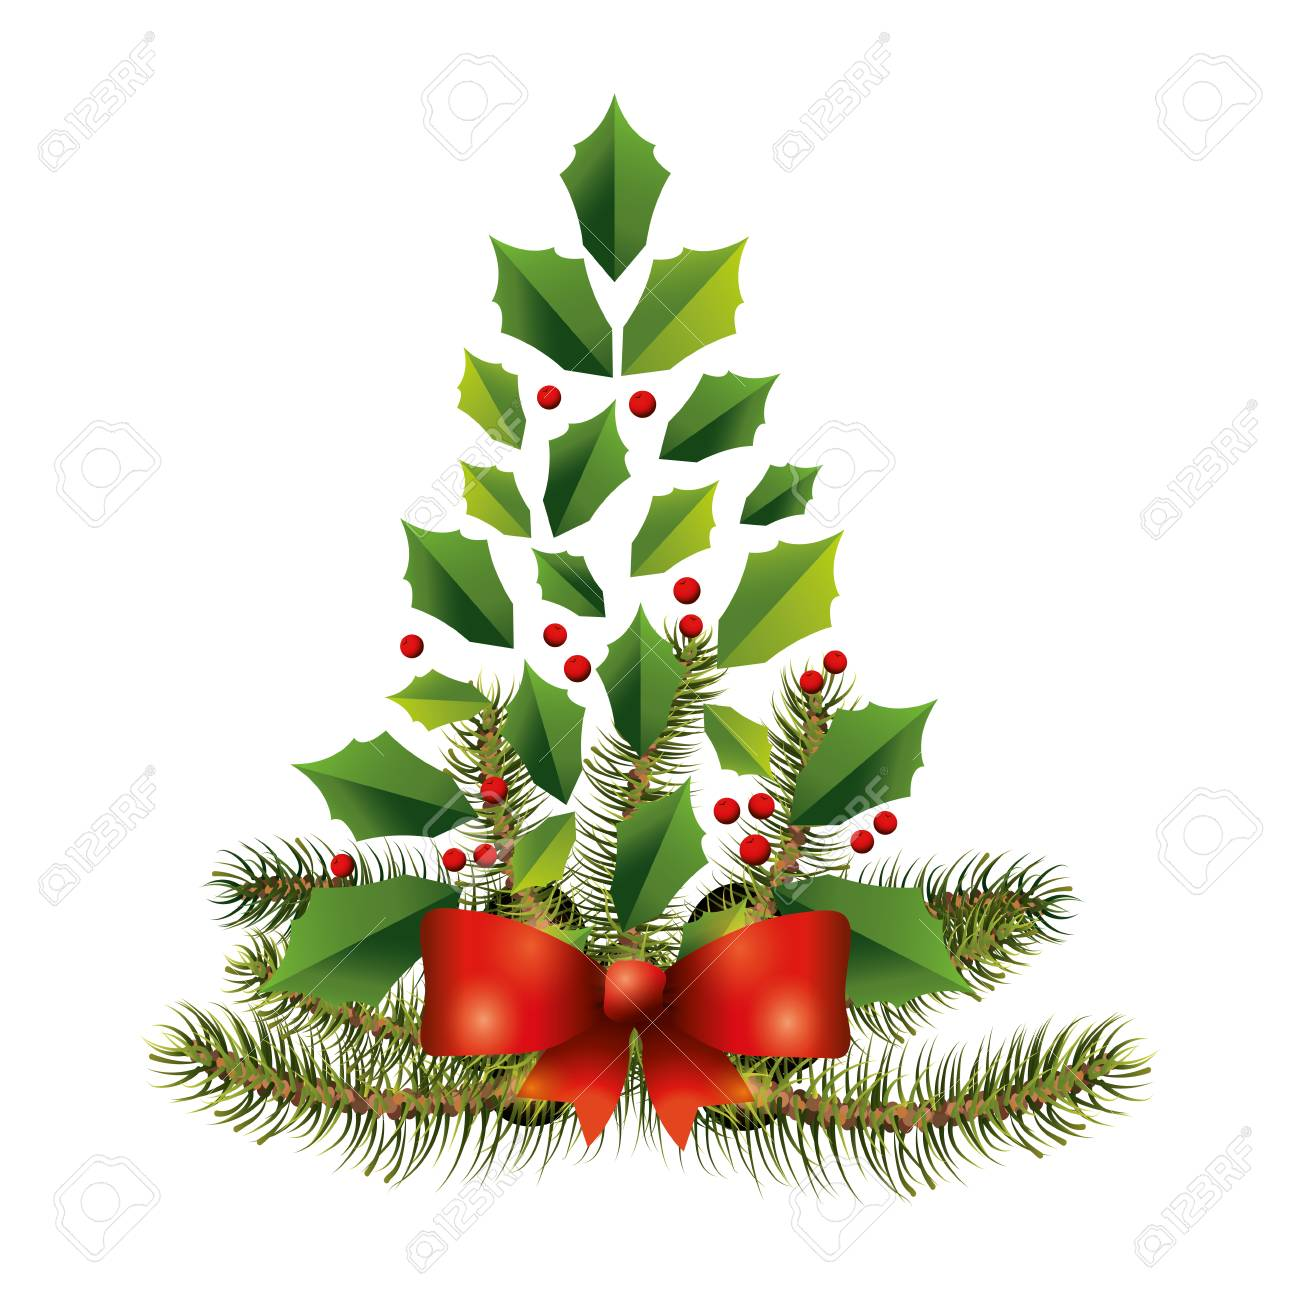 Luxury And Elegant Christmas Tree With Christmas Decoration Royalty Free Cliparts Vectors And Stock Illustration Image 112581110